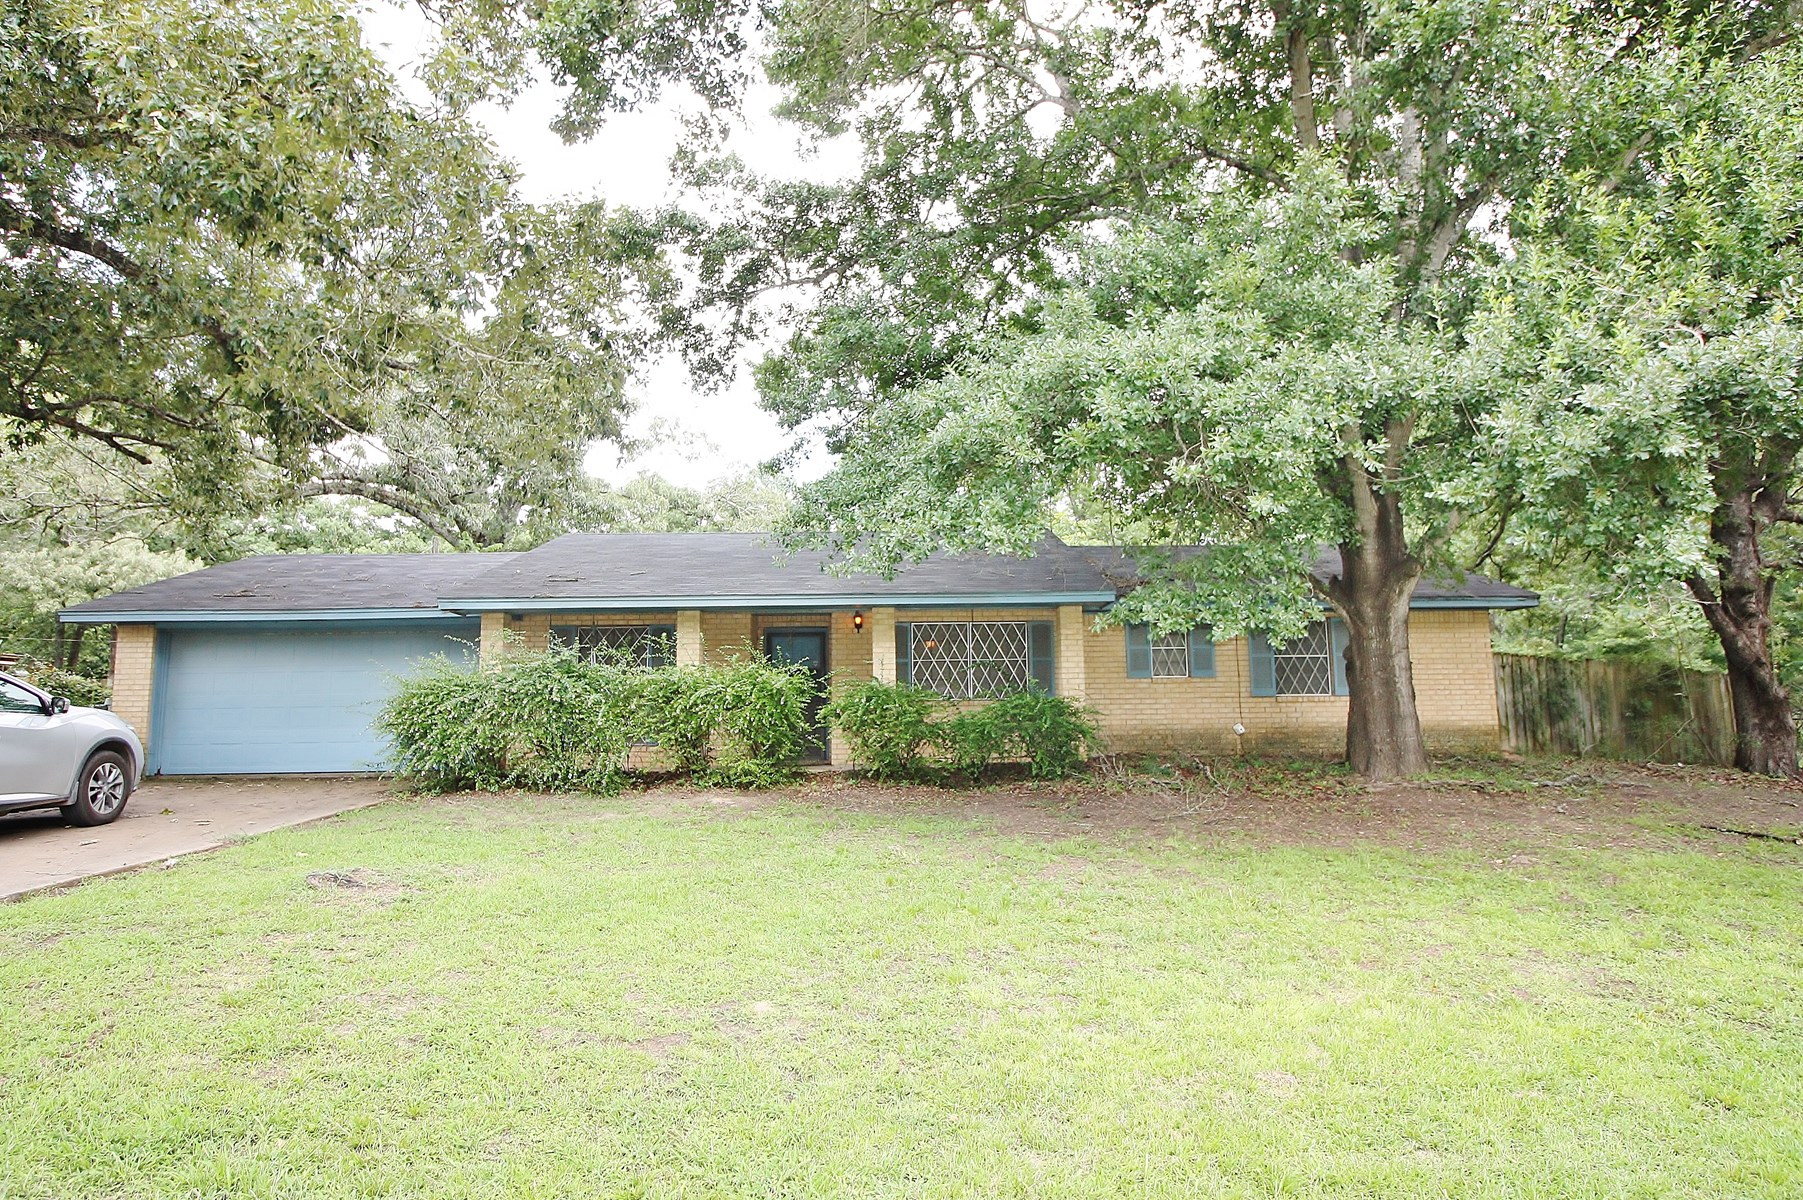 Brick Home in Town for Sale in Buffalo, TX